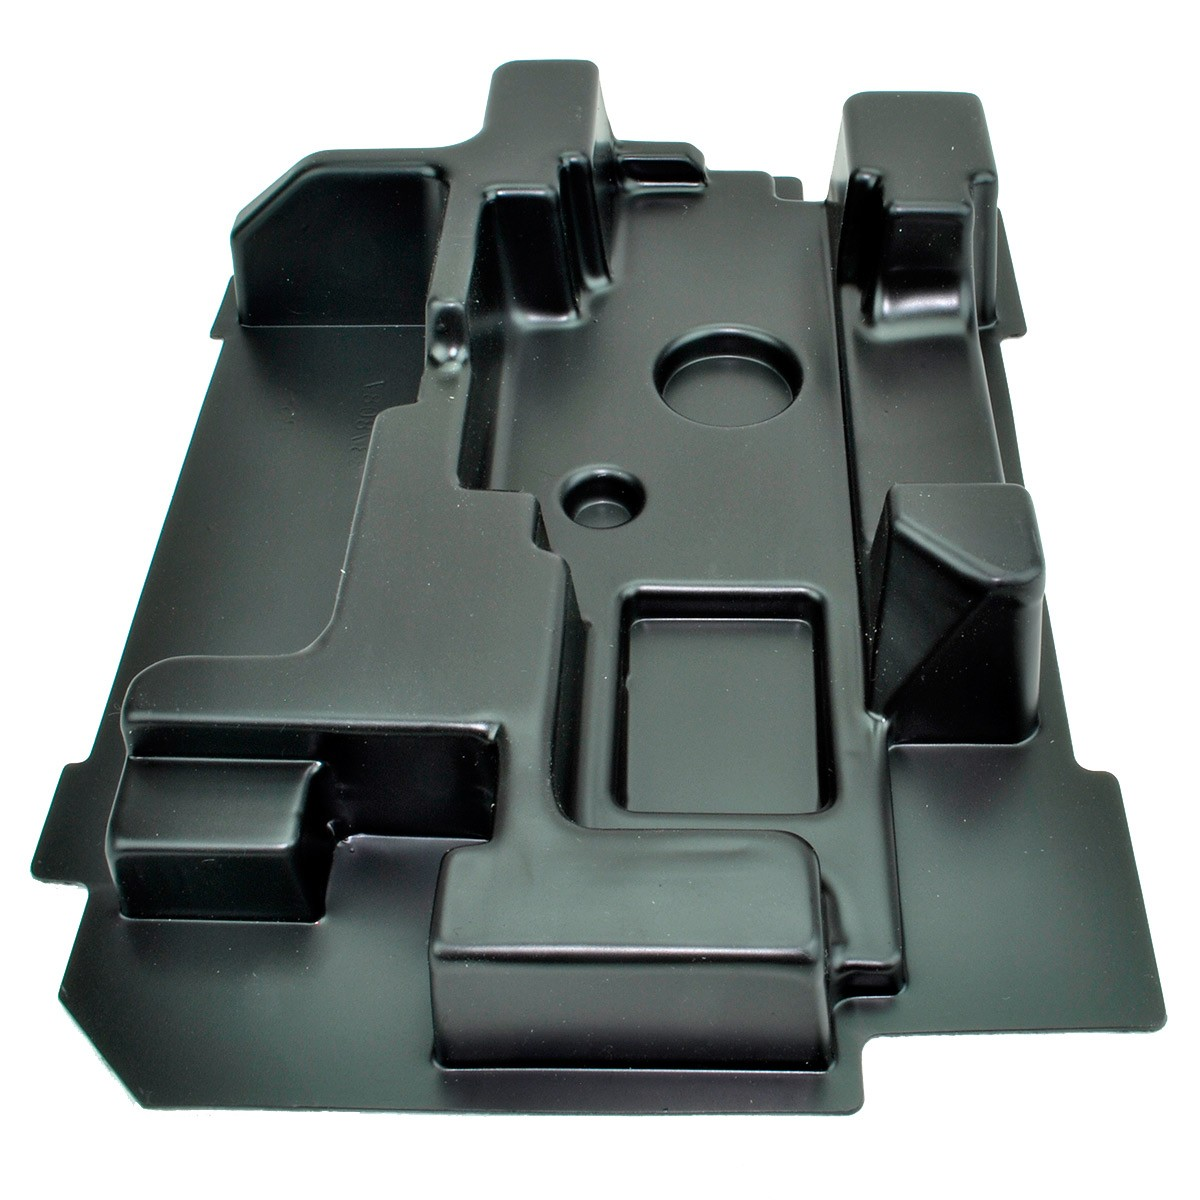 Makita 837808-7 DKP180Z Planer Inlay Tray for Makpac Type 3 Connector Case